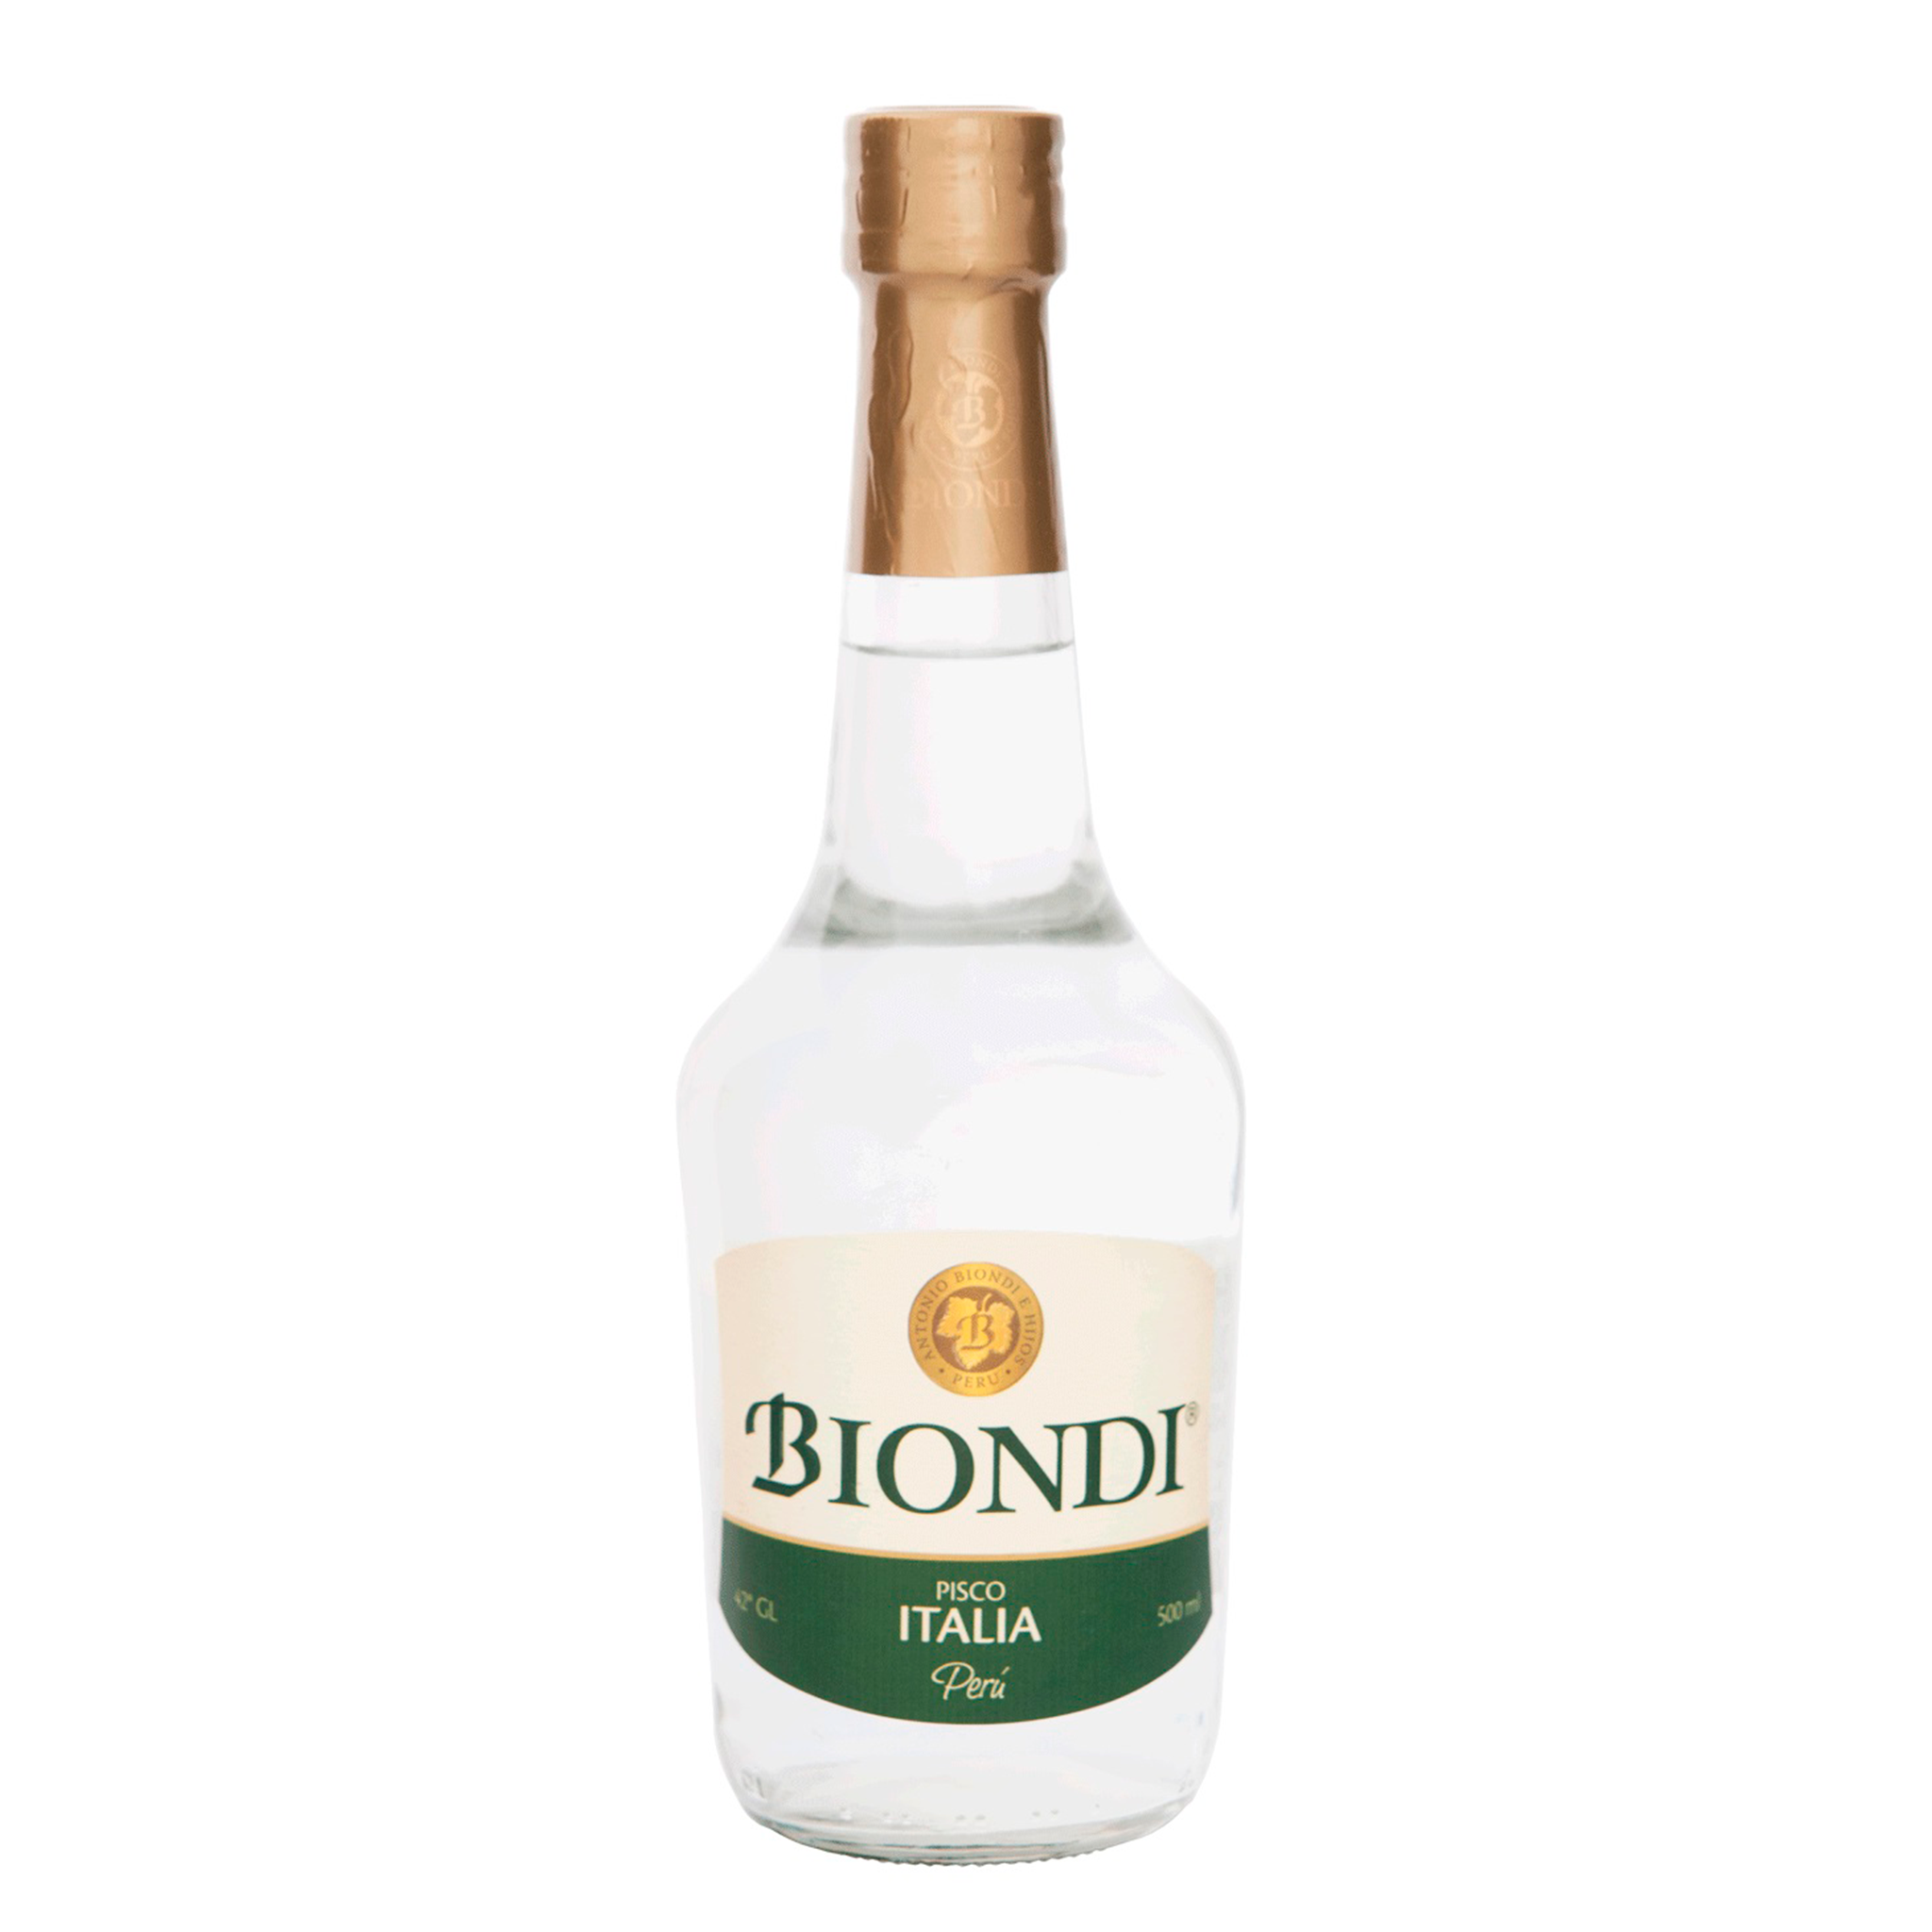 PISCO BIONDI ITALIA x 500ML